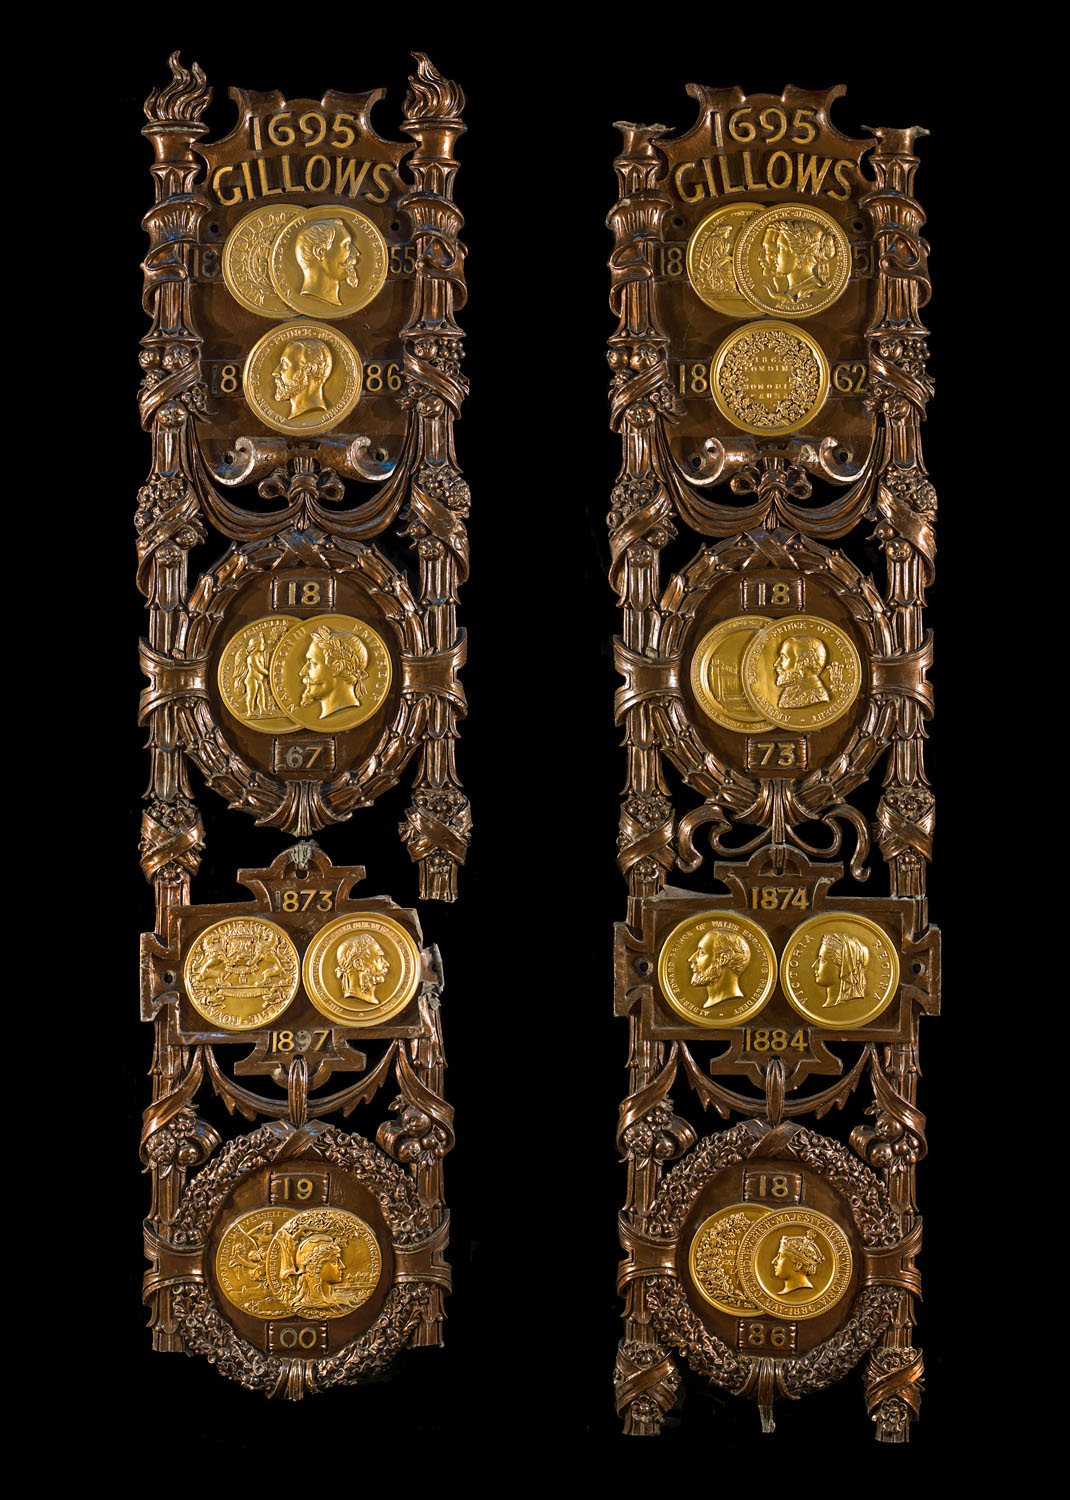 A pair of enormous Art Nouveau antique bronze Exhibition Panels made for Gillow of Lancaster